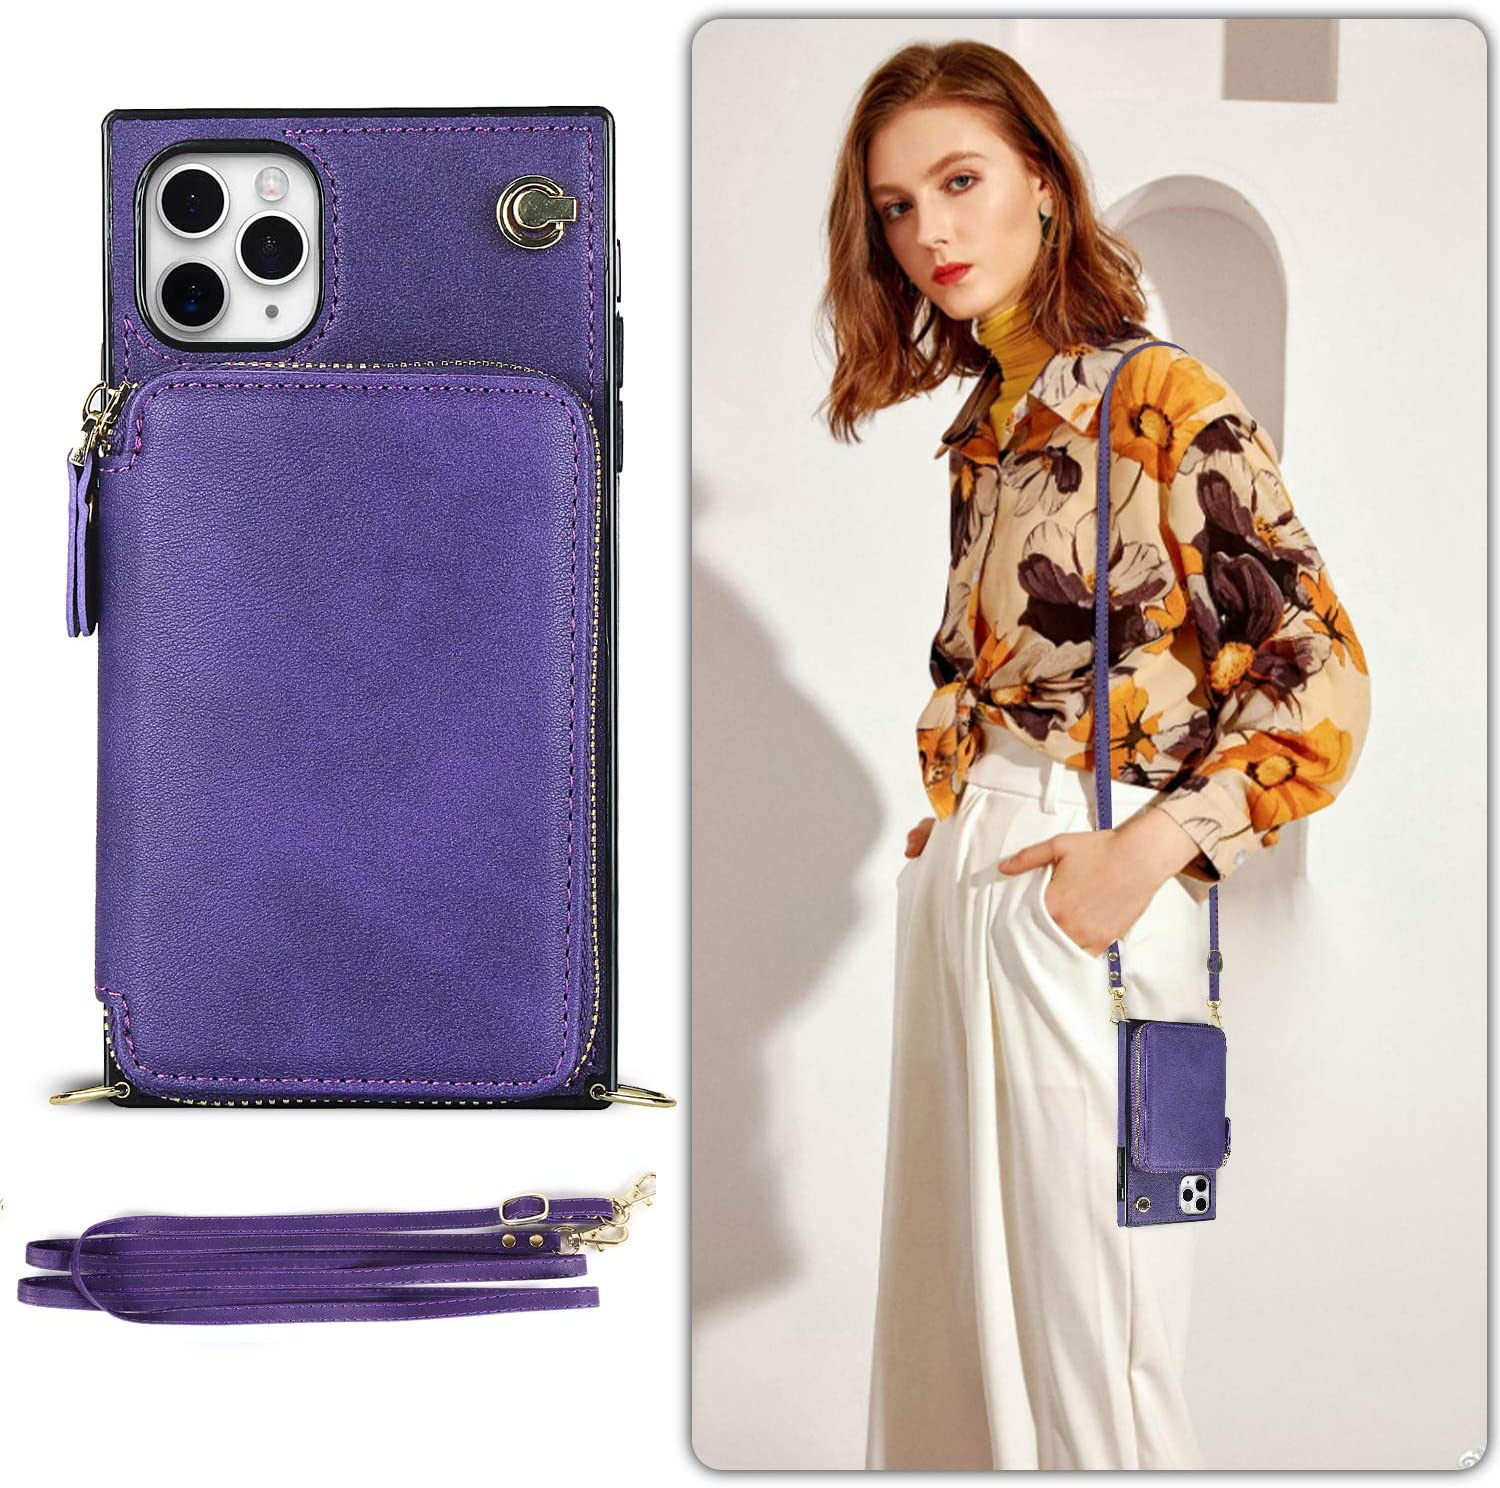 LUVI Wallet Card Holder for iPhone 11 Pro Case with Crossbody Neck Strap Lanyard Purse Handbag Shoulder Strap Protection Cover PU Leather Kickstand Stand Case for iPhone 11 Pro 5.8 inch Purple